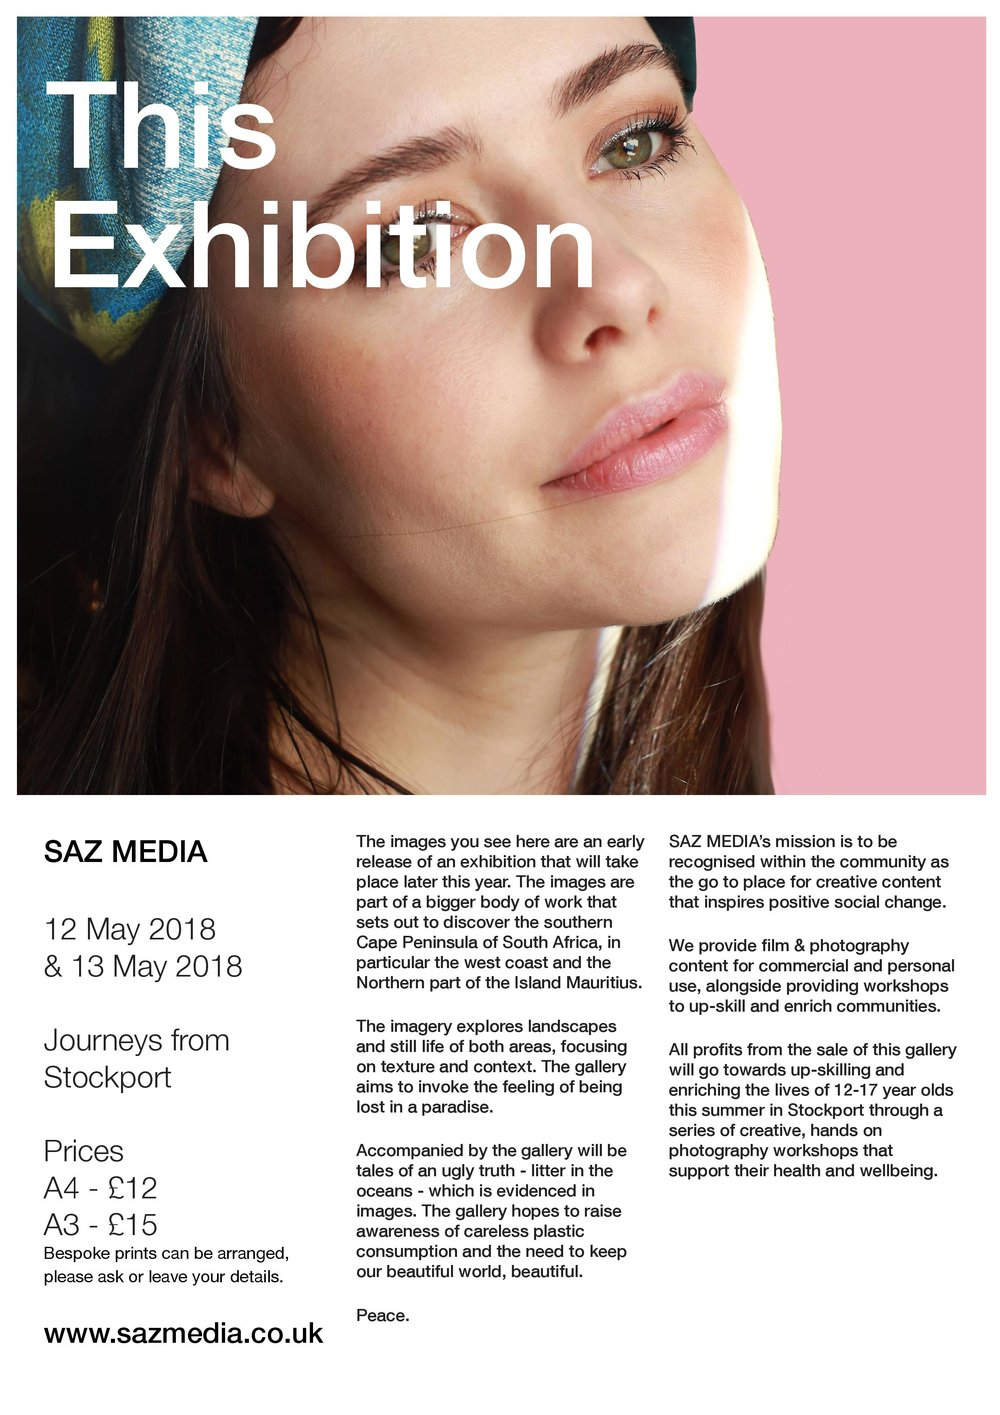 sazmedia_exhibition